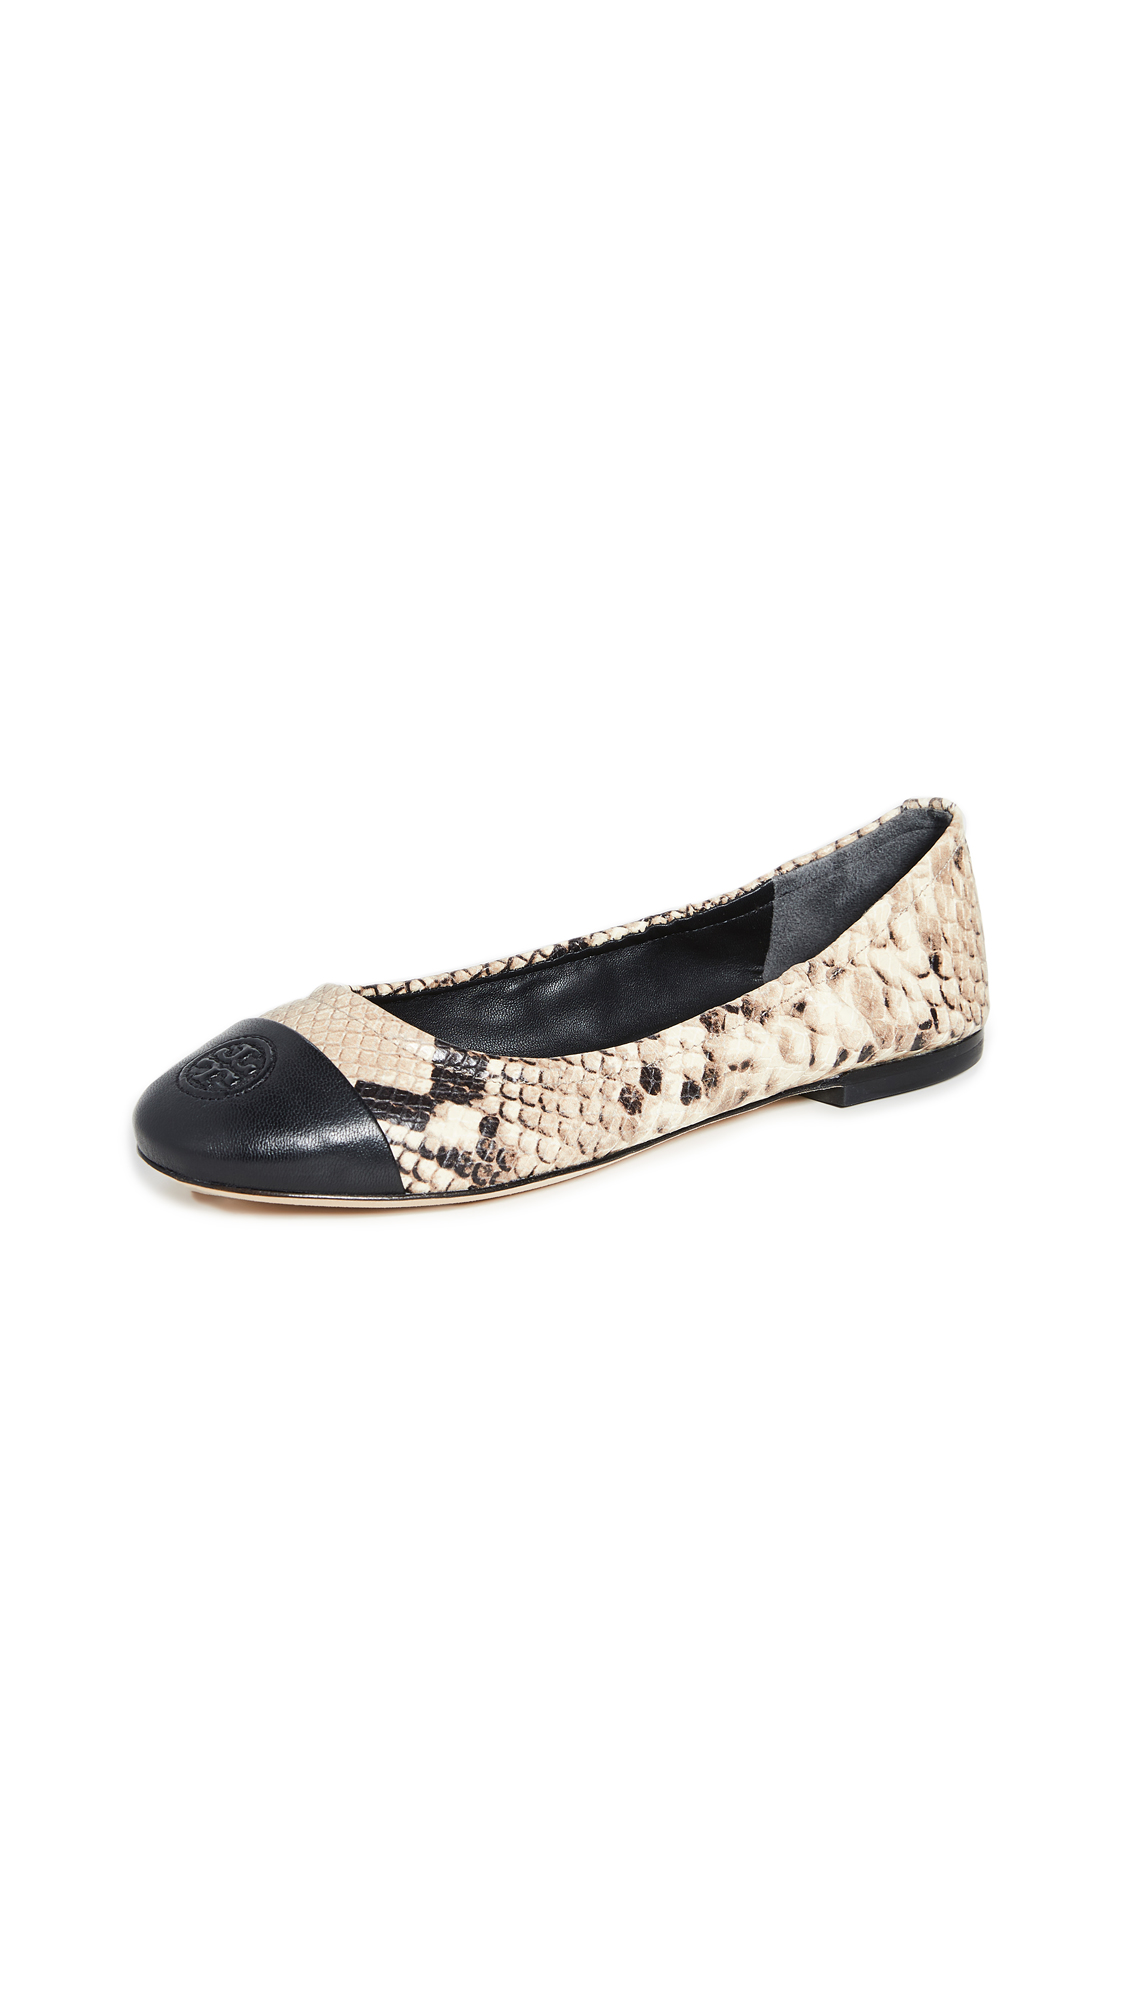 Tory Burch Exclusive Cap Toe Ballet Flats - 50% Off Sale